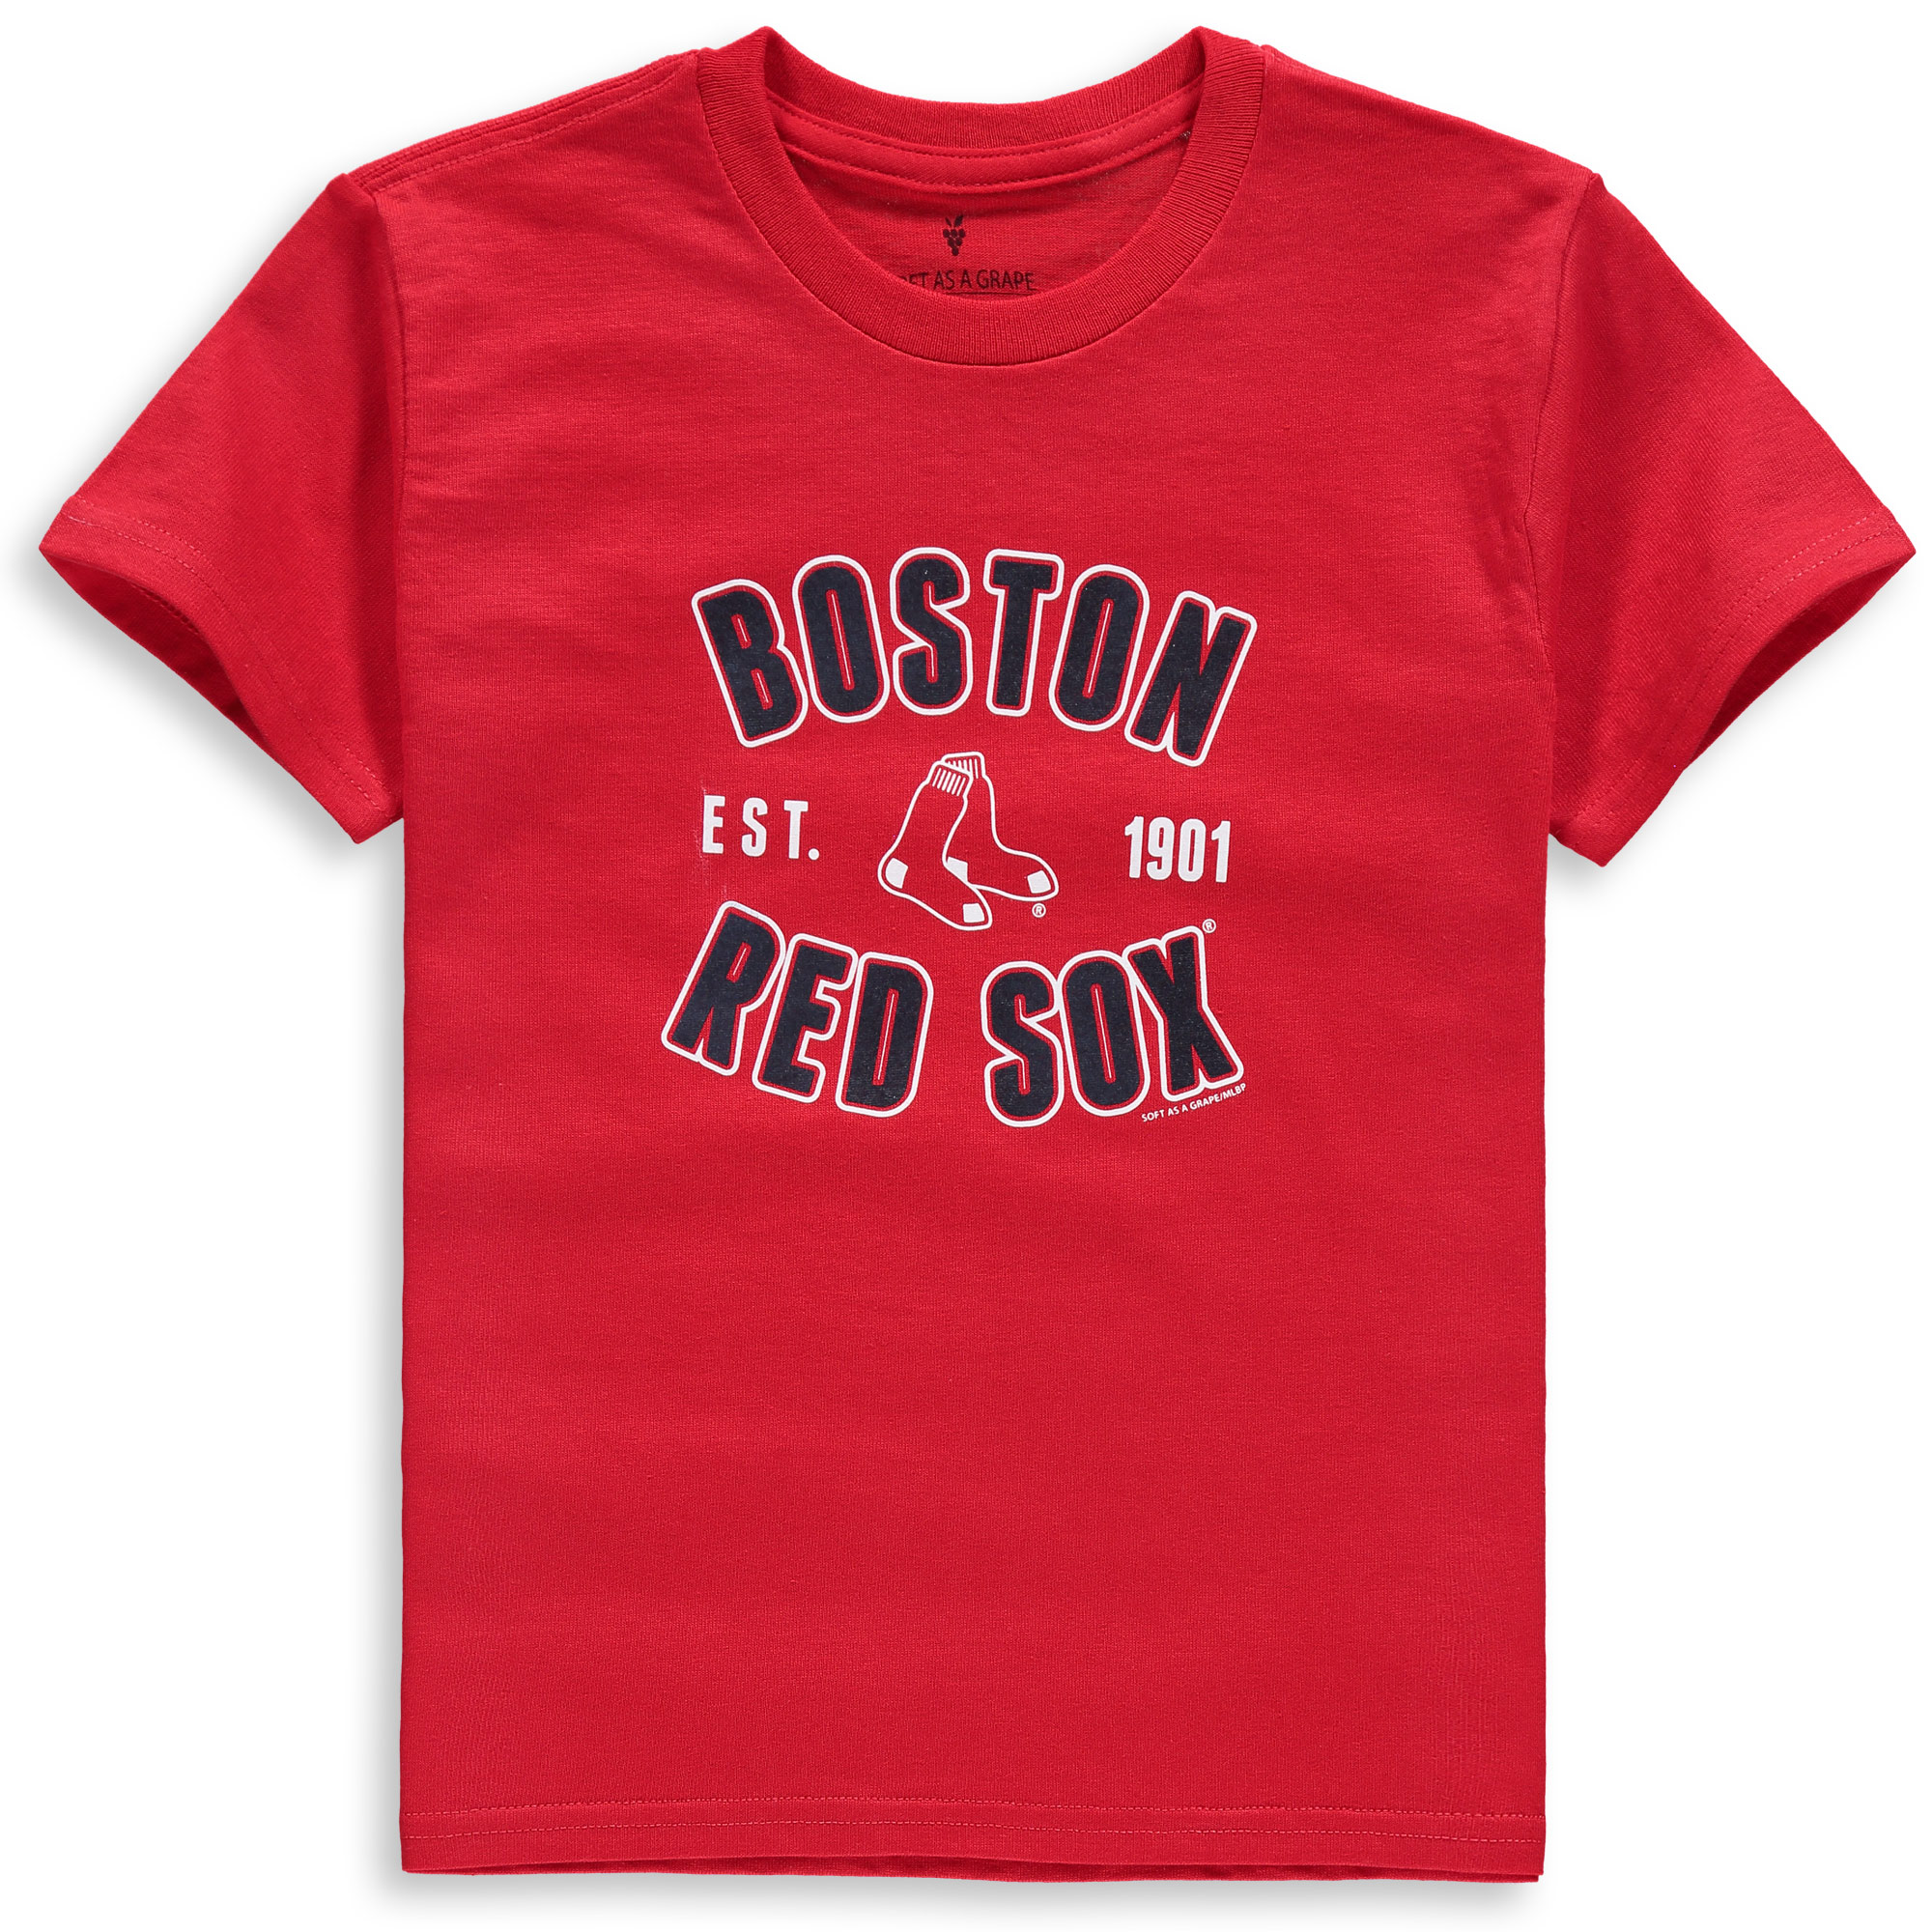 Boston Red Sox Soft as a Grape Youth Cotton Crew Neck T-Shirt - Red